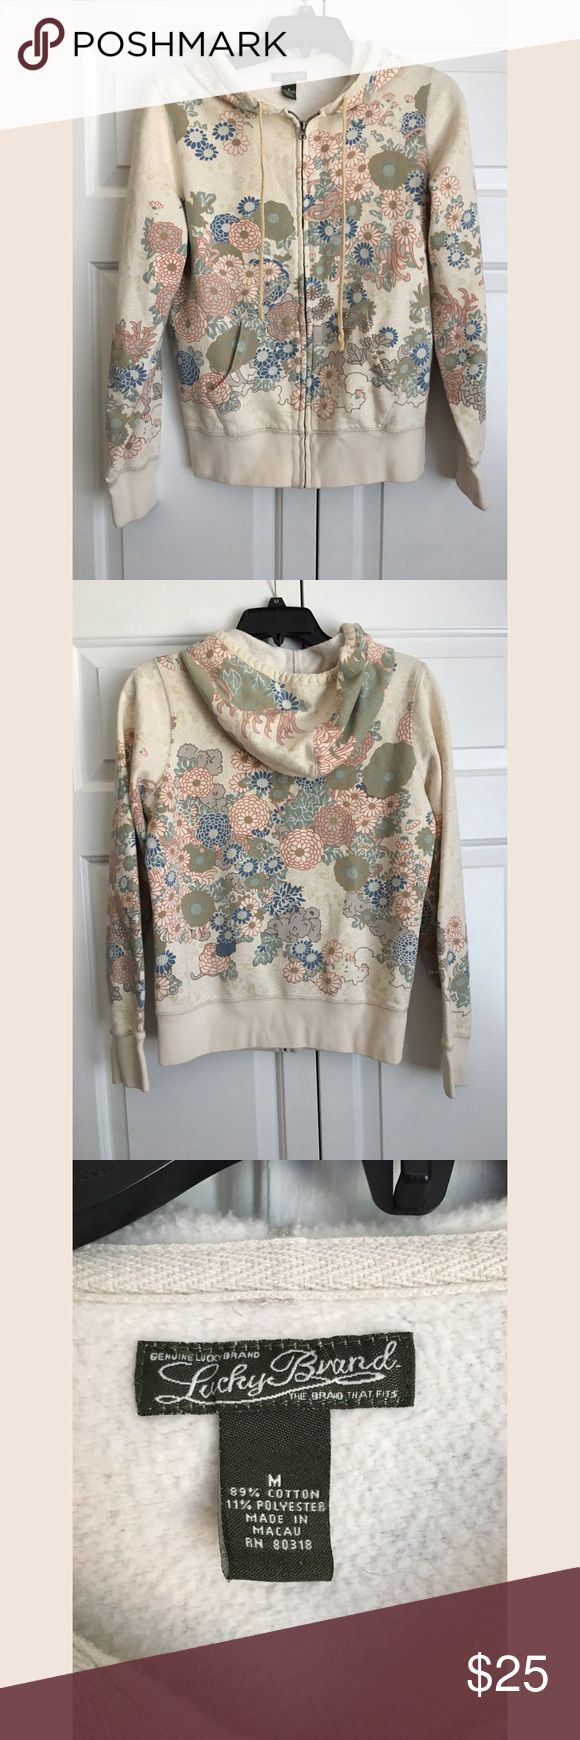 Lucky Brand Boho Floral Zip Up Hoodie -Size Medium Excellent used condition! From a smoke and pet free home. No trades. Lucky Brand Tops Sweatshirts & Hoodies